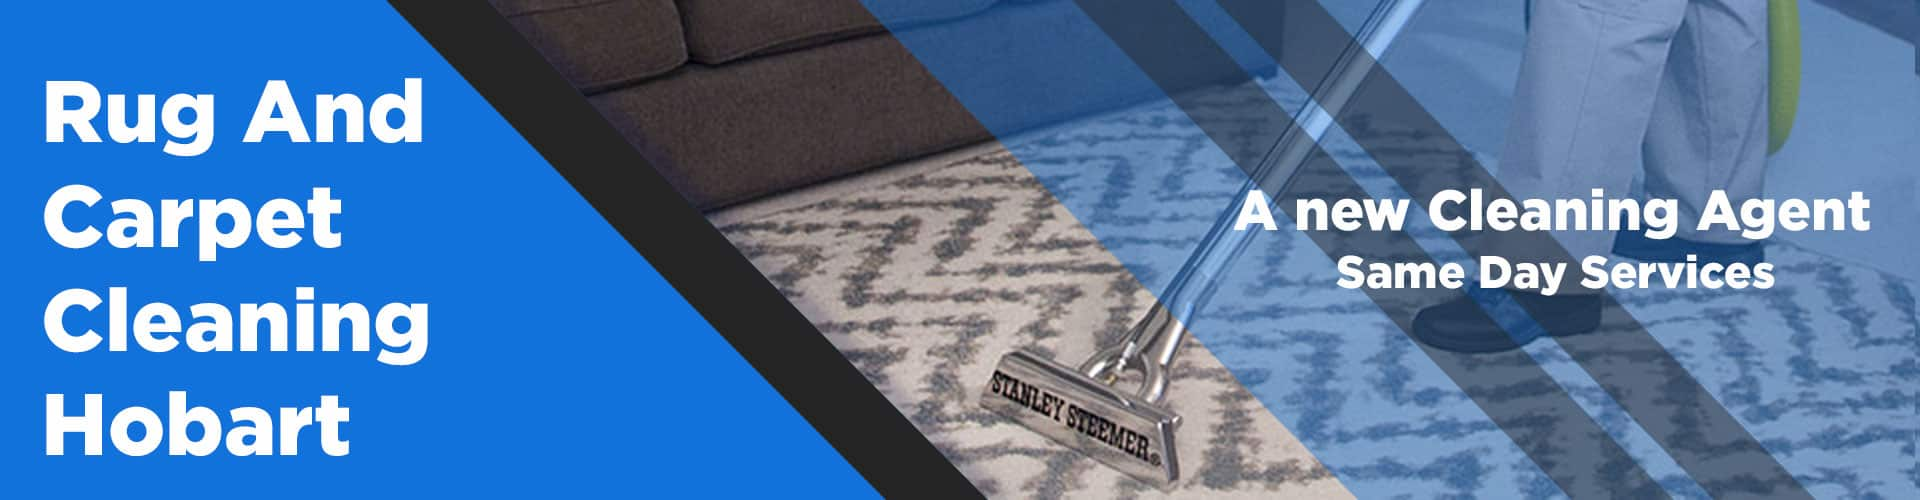 Rug And Carpet Cleaning Hobart